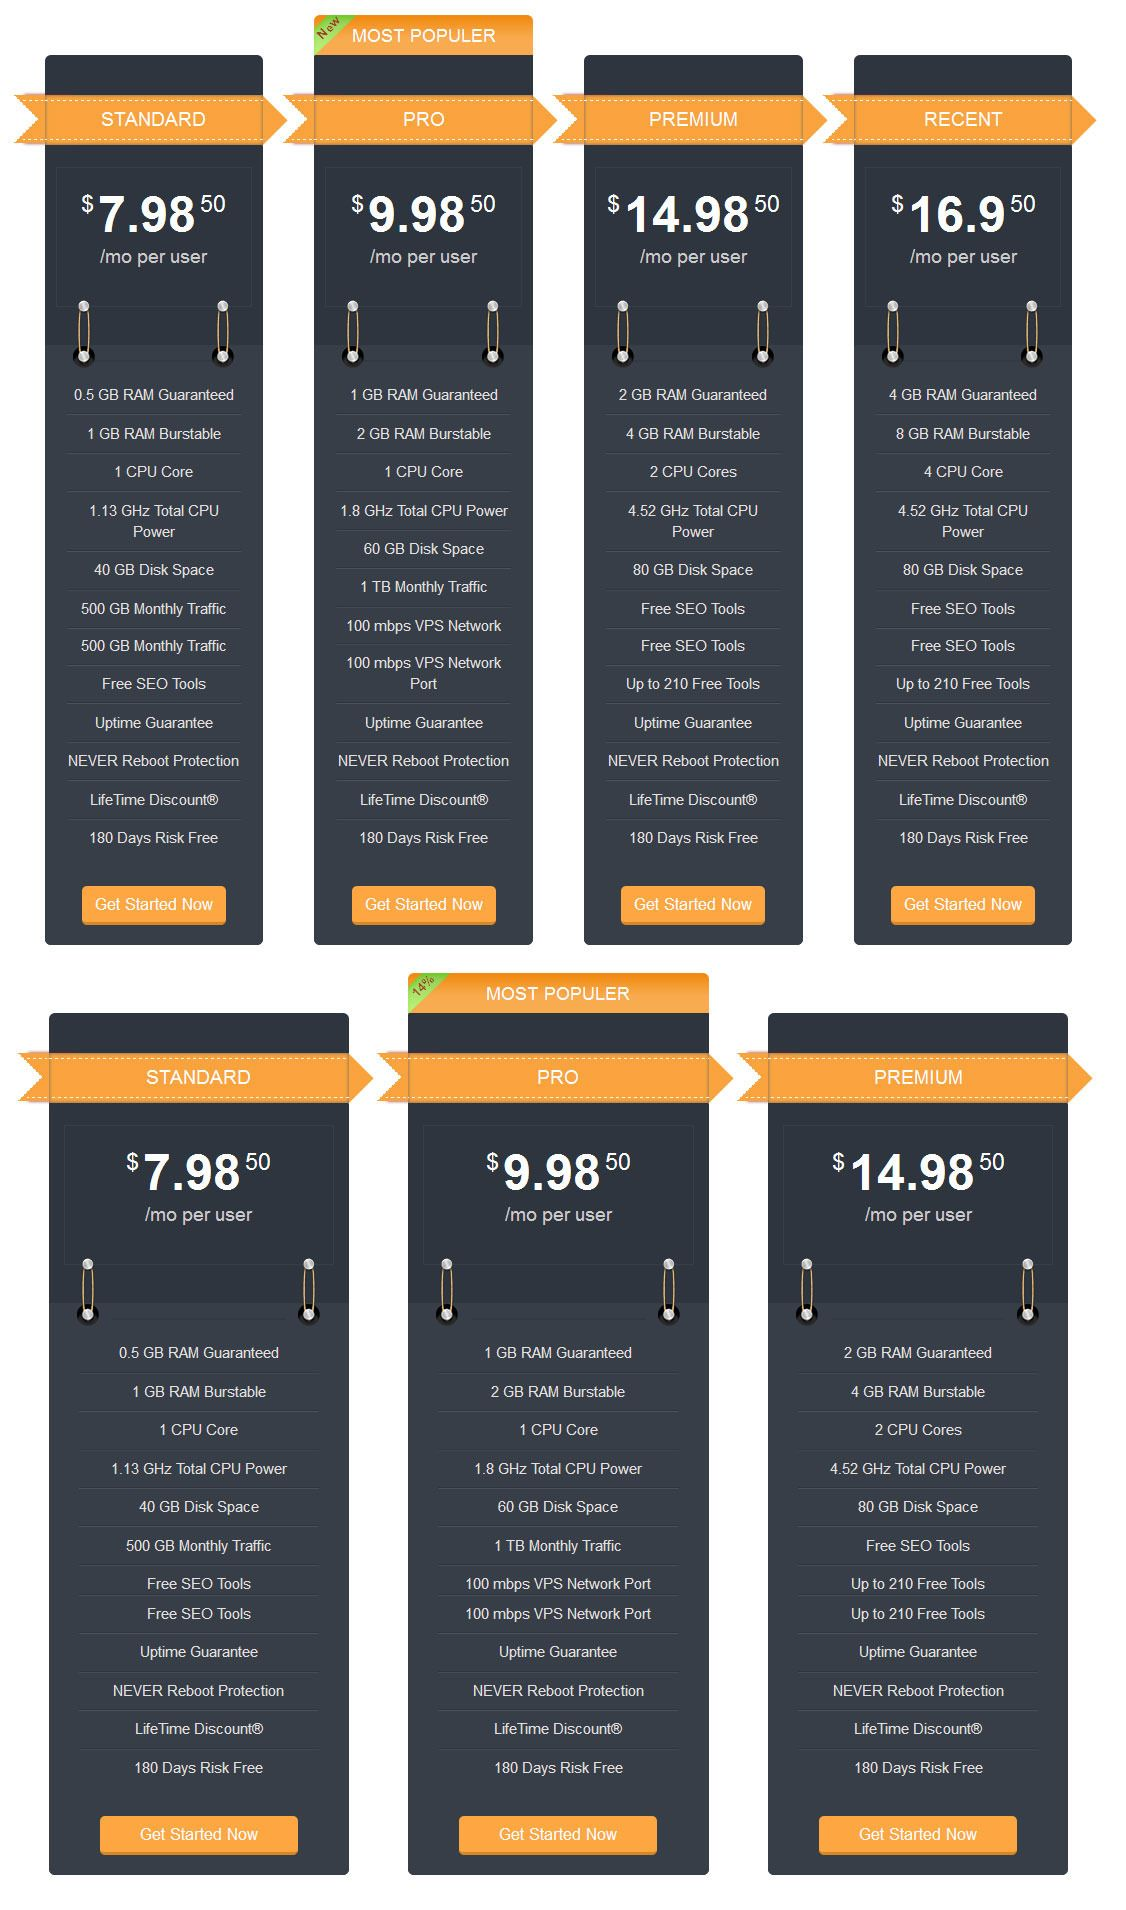 Awesome Pricing Table Pricing table, Column design, Awesome